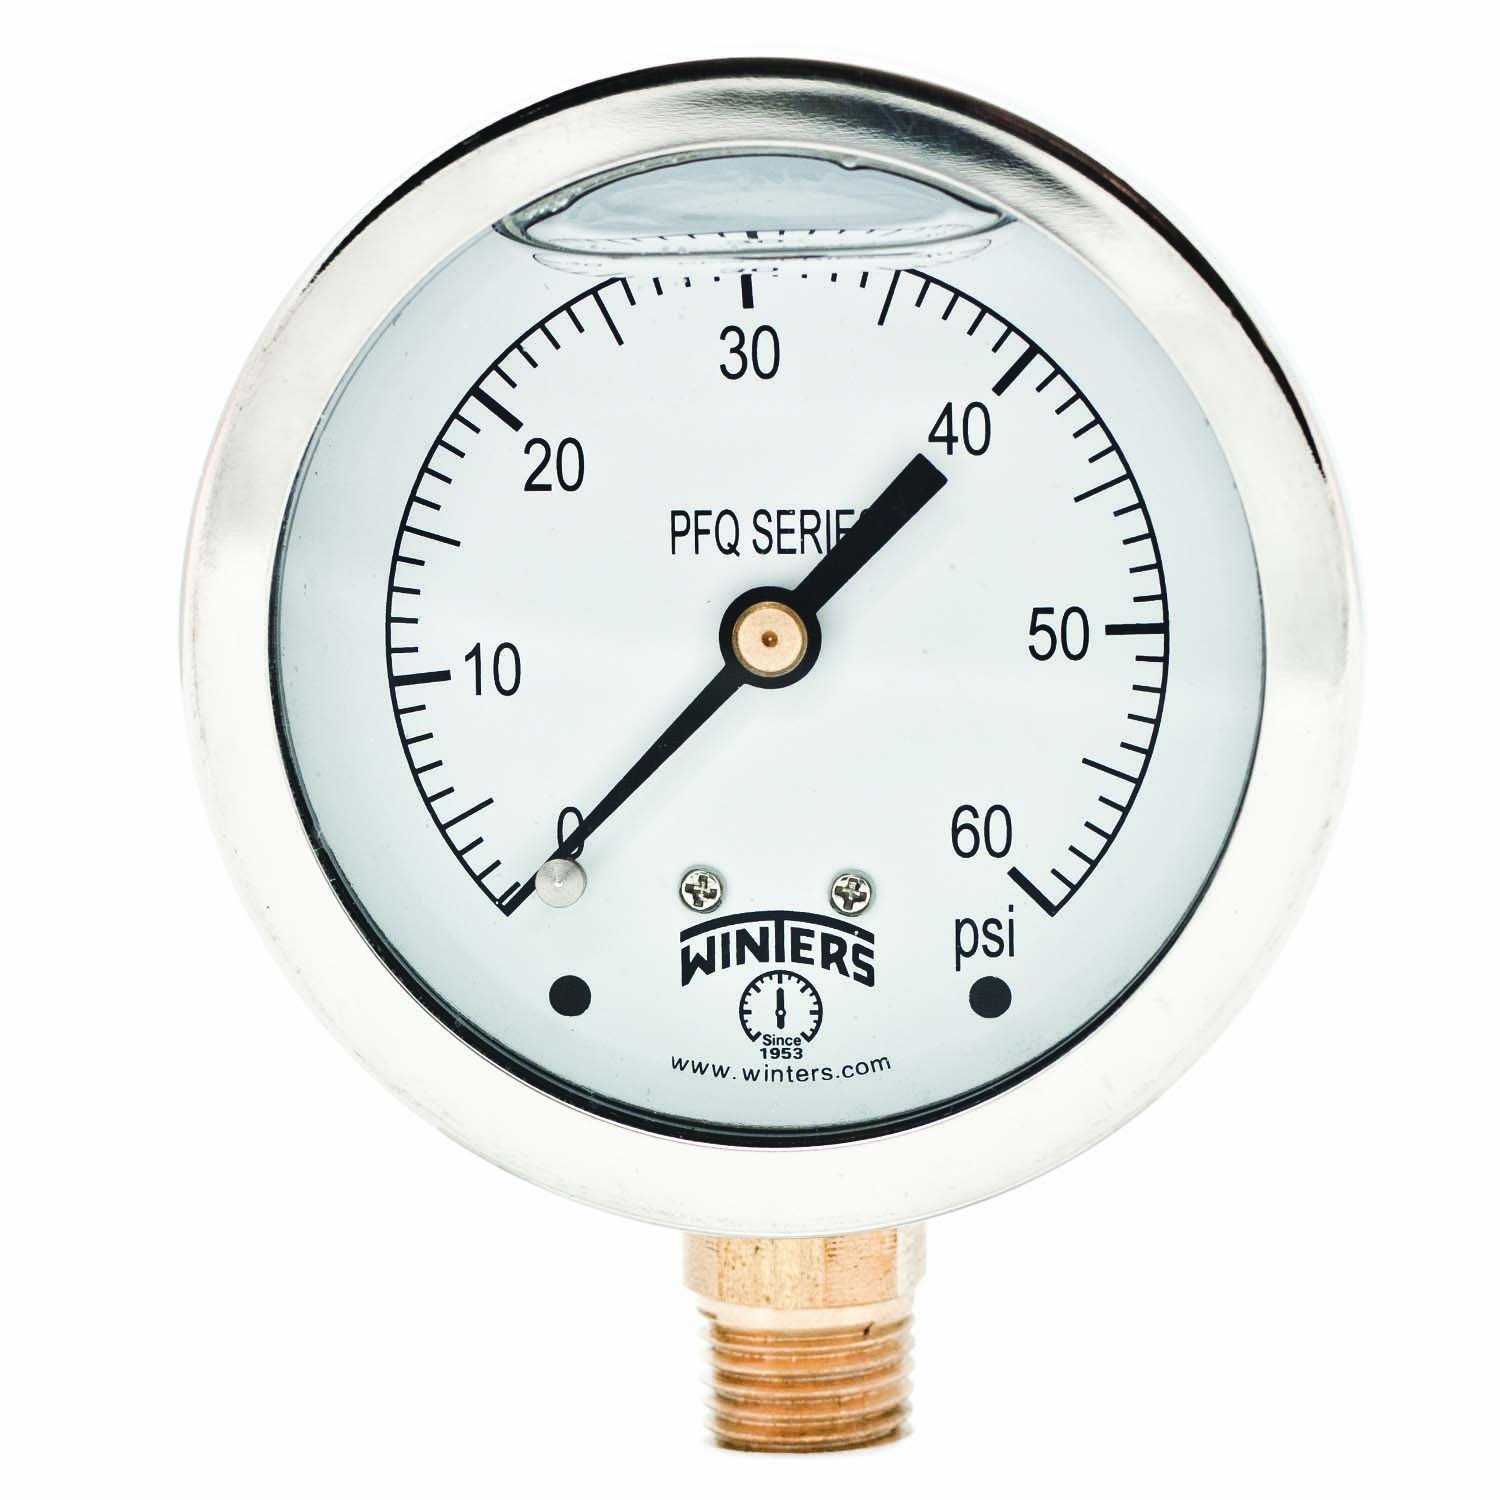 Winters PFQ Series Outlet sale feature Stainless Steel 304 Fille Purchase Liquid Scale Single